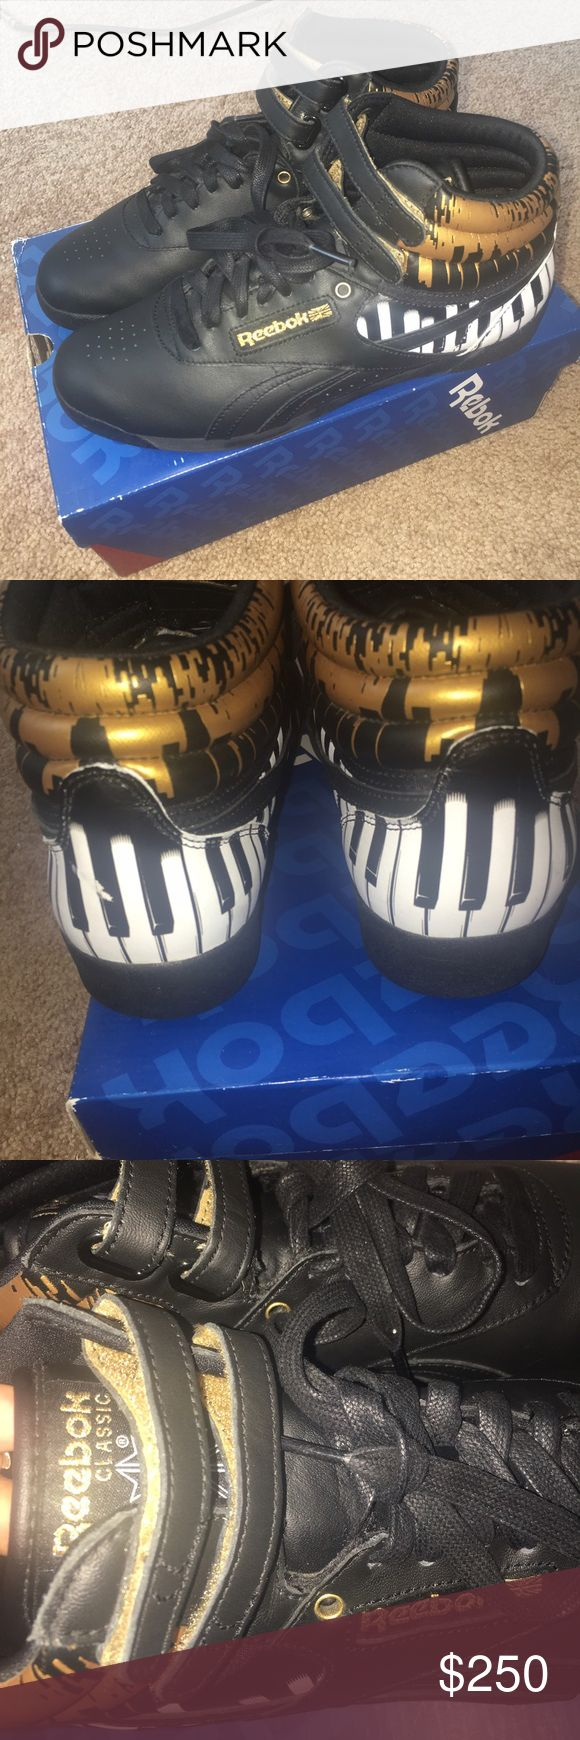 Alicia keys piano limited edition reeboks Up for sale in great condition worn twice very comfortable shoe Reebok Shoes Sneakers